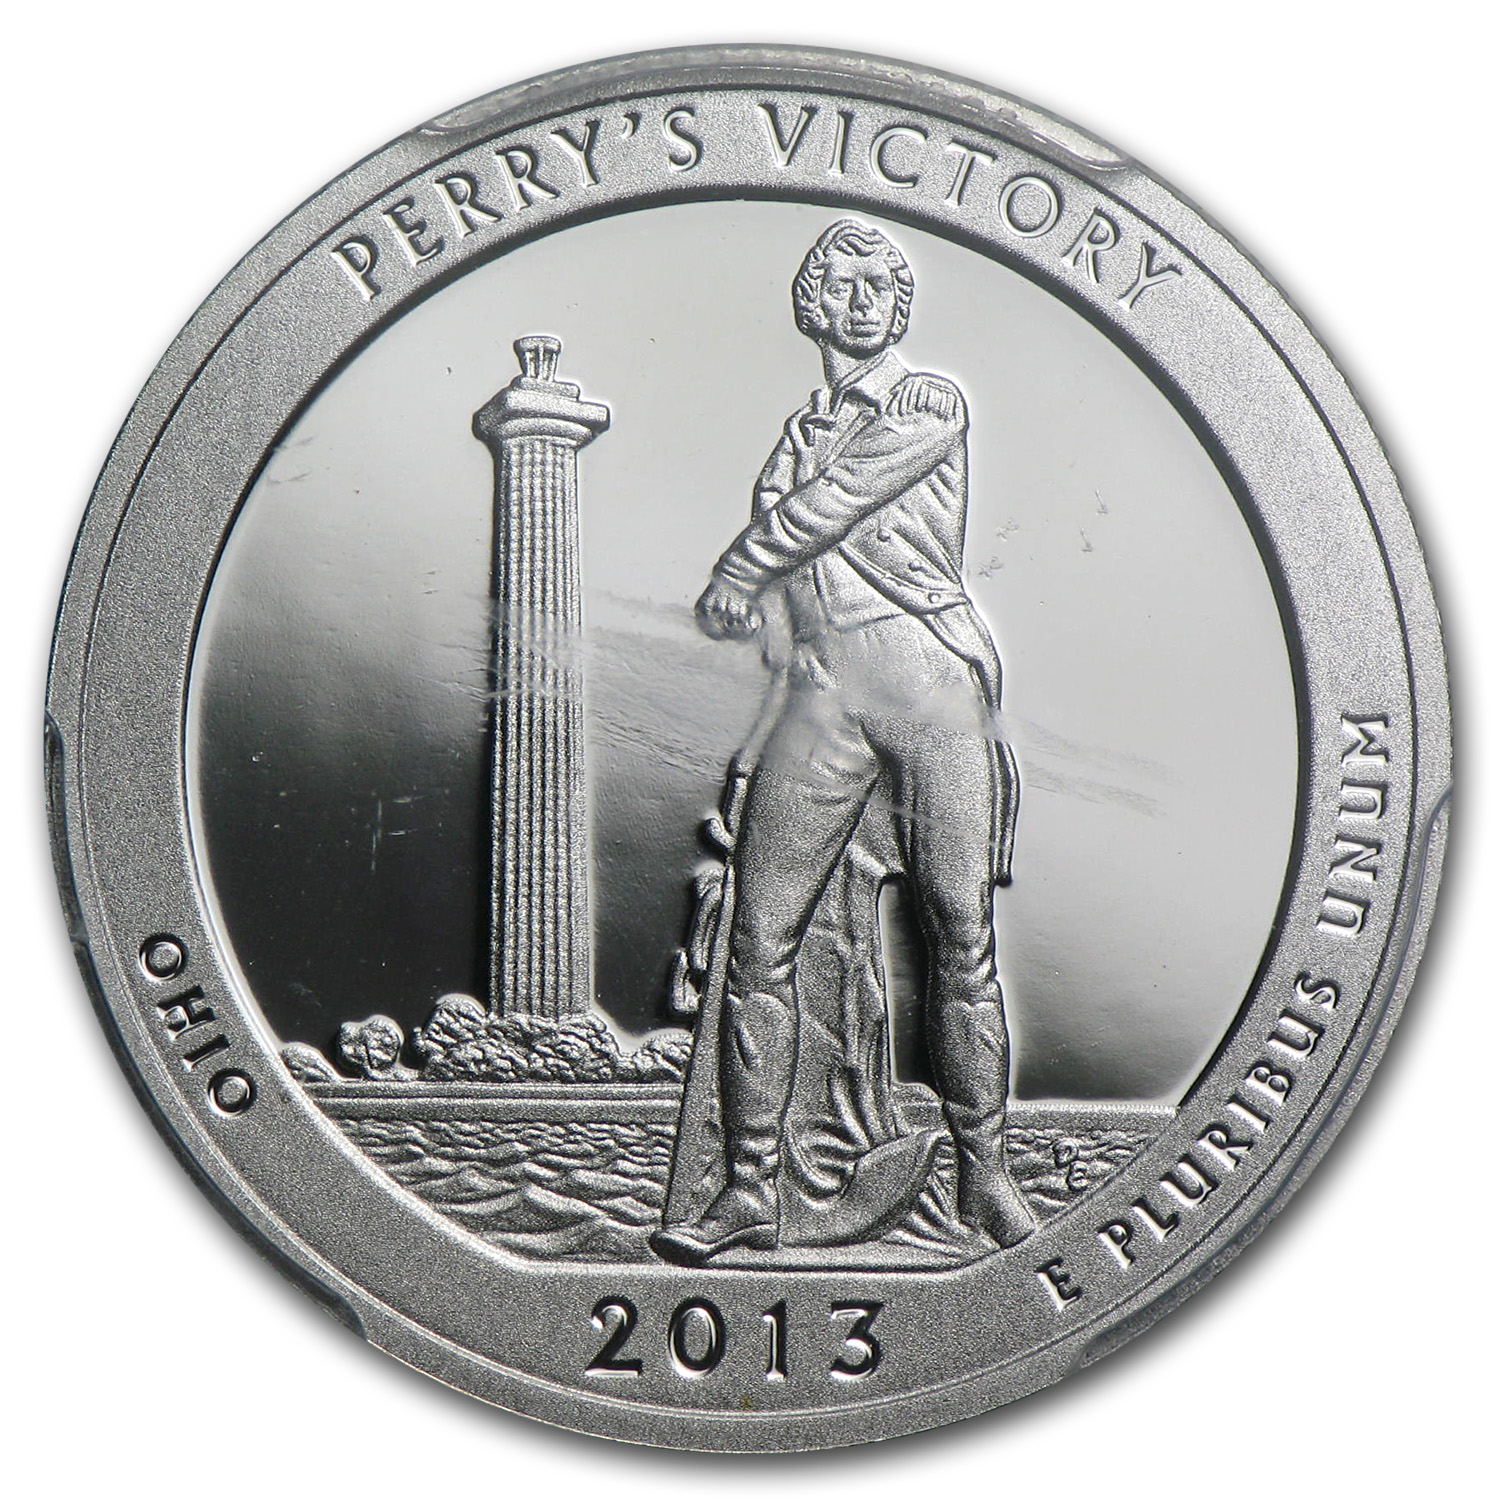 2013 Limited Edition Proof Silver Perrys Victory Quarter PR-69 FS